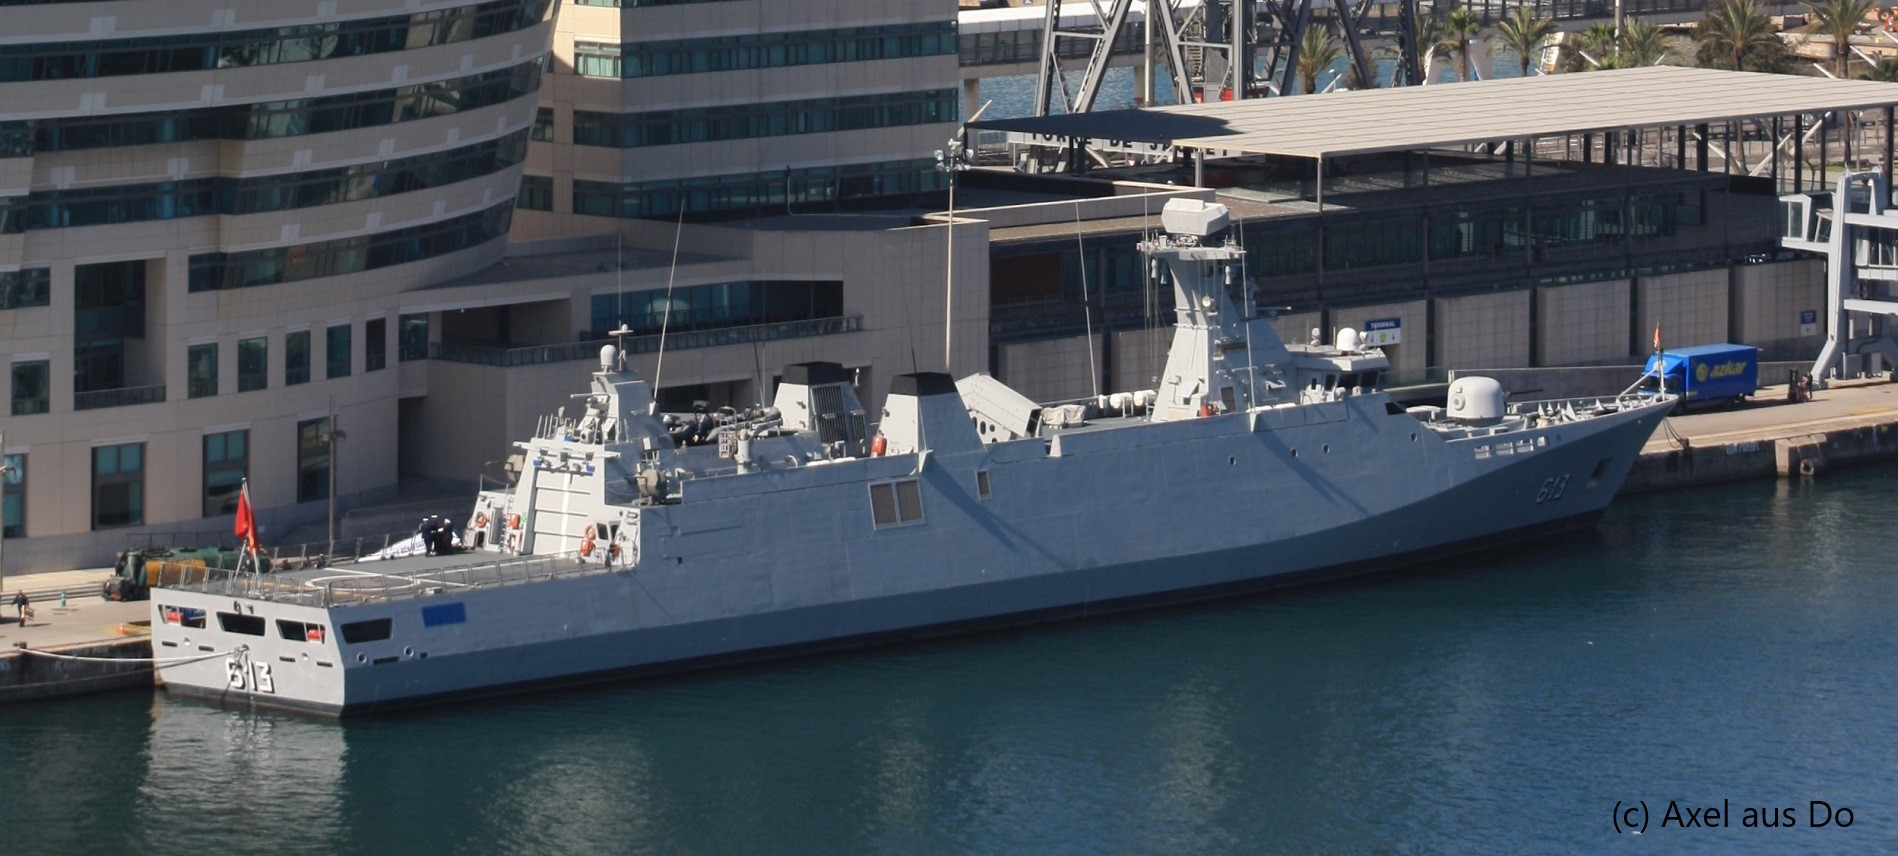 Royal Moroccan Navy Sigma class frigates / Frégates marocaines multimissions Sigma - Page 26 3123871